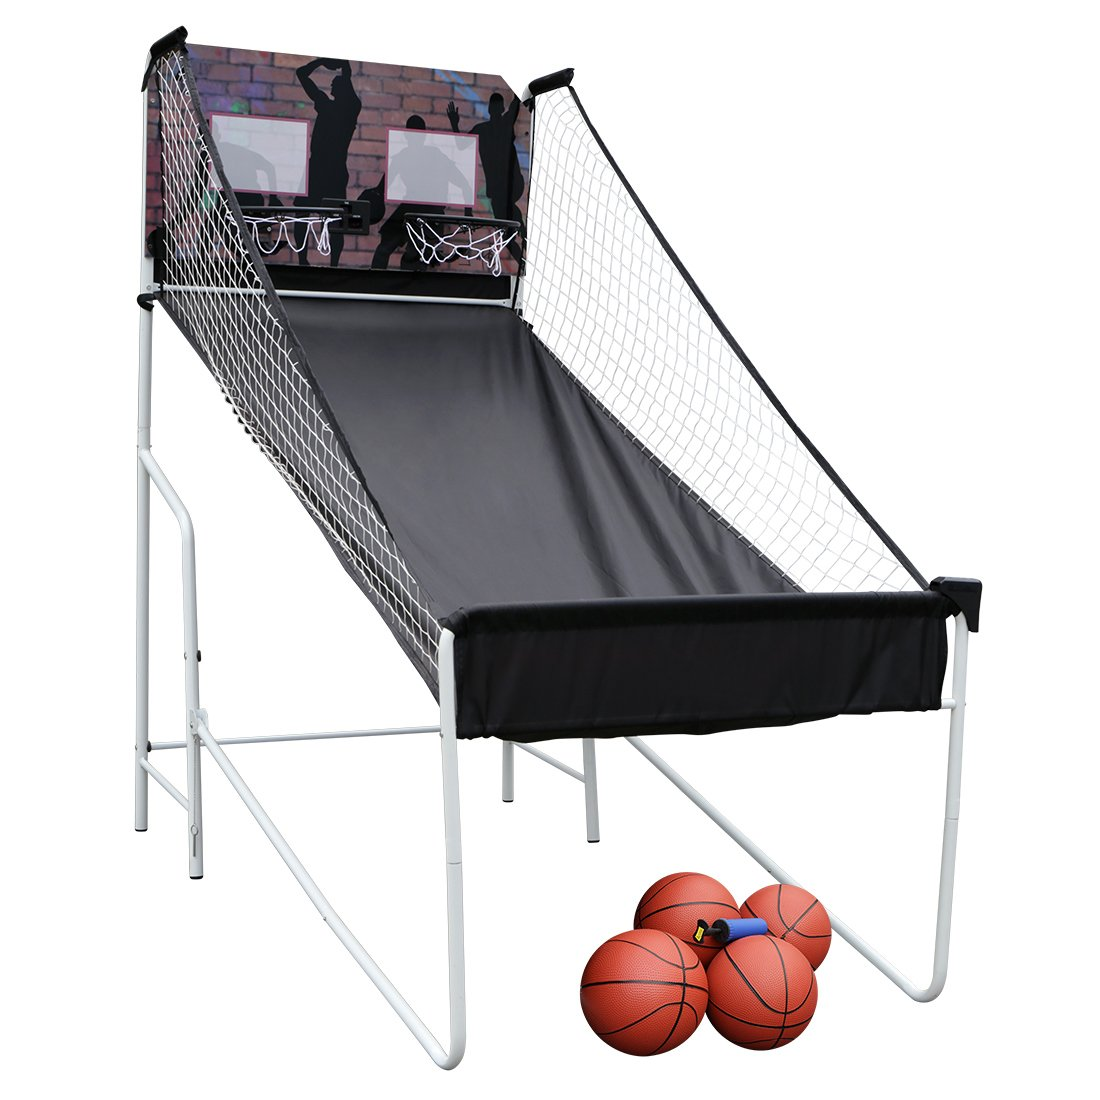 Home Folding Double Electronic Hoops Shot Electronic Basketball Arcade Game for 2 Player BestValue Go